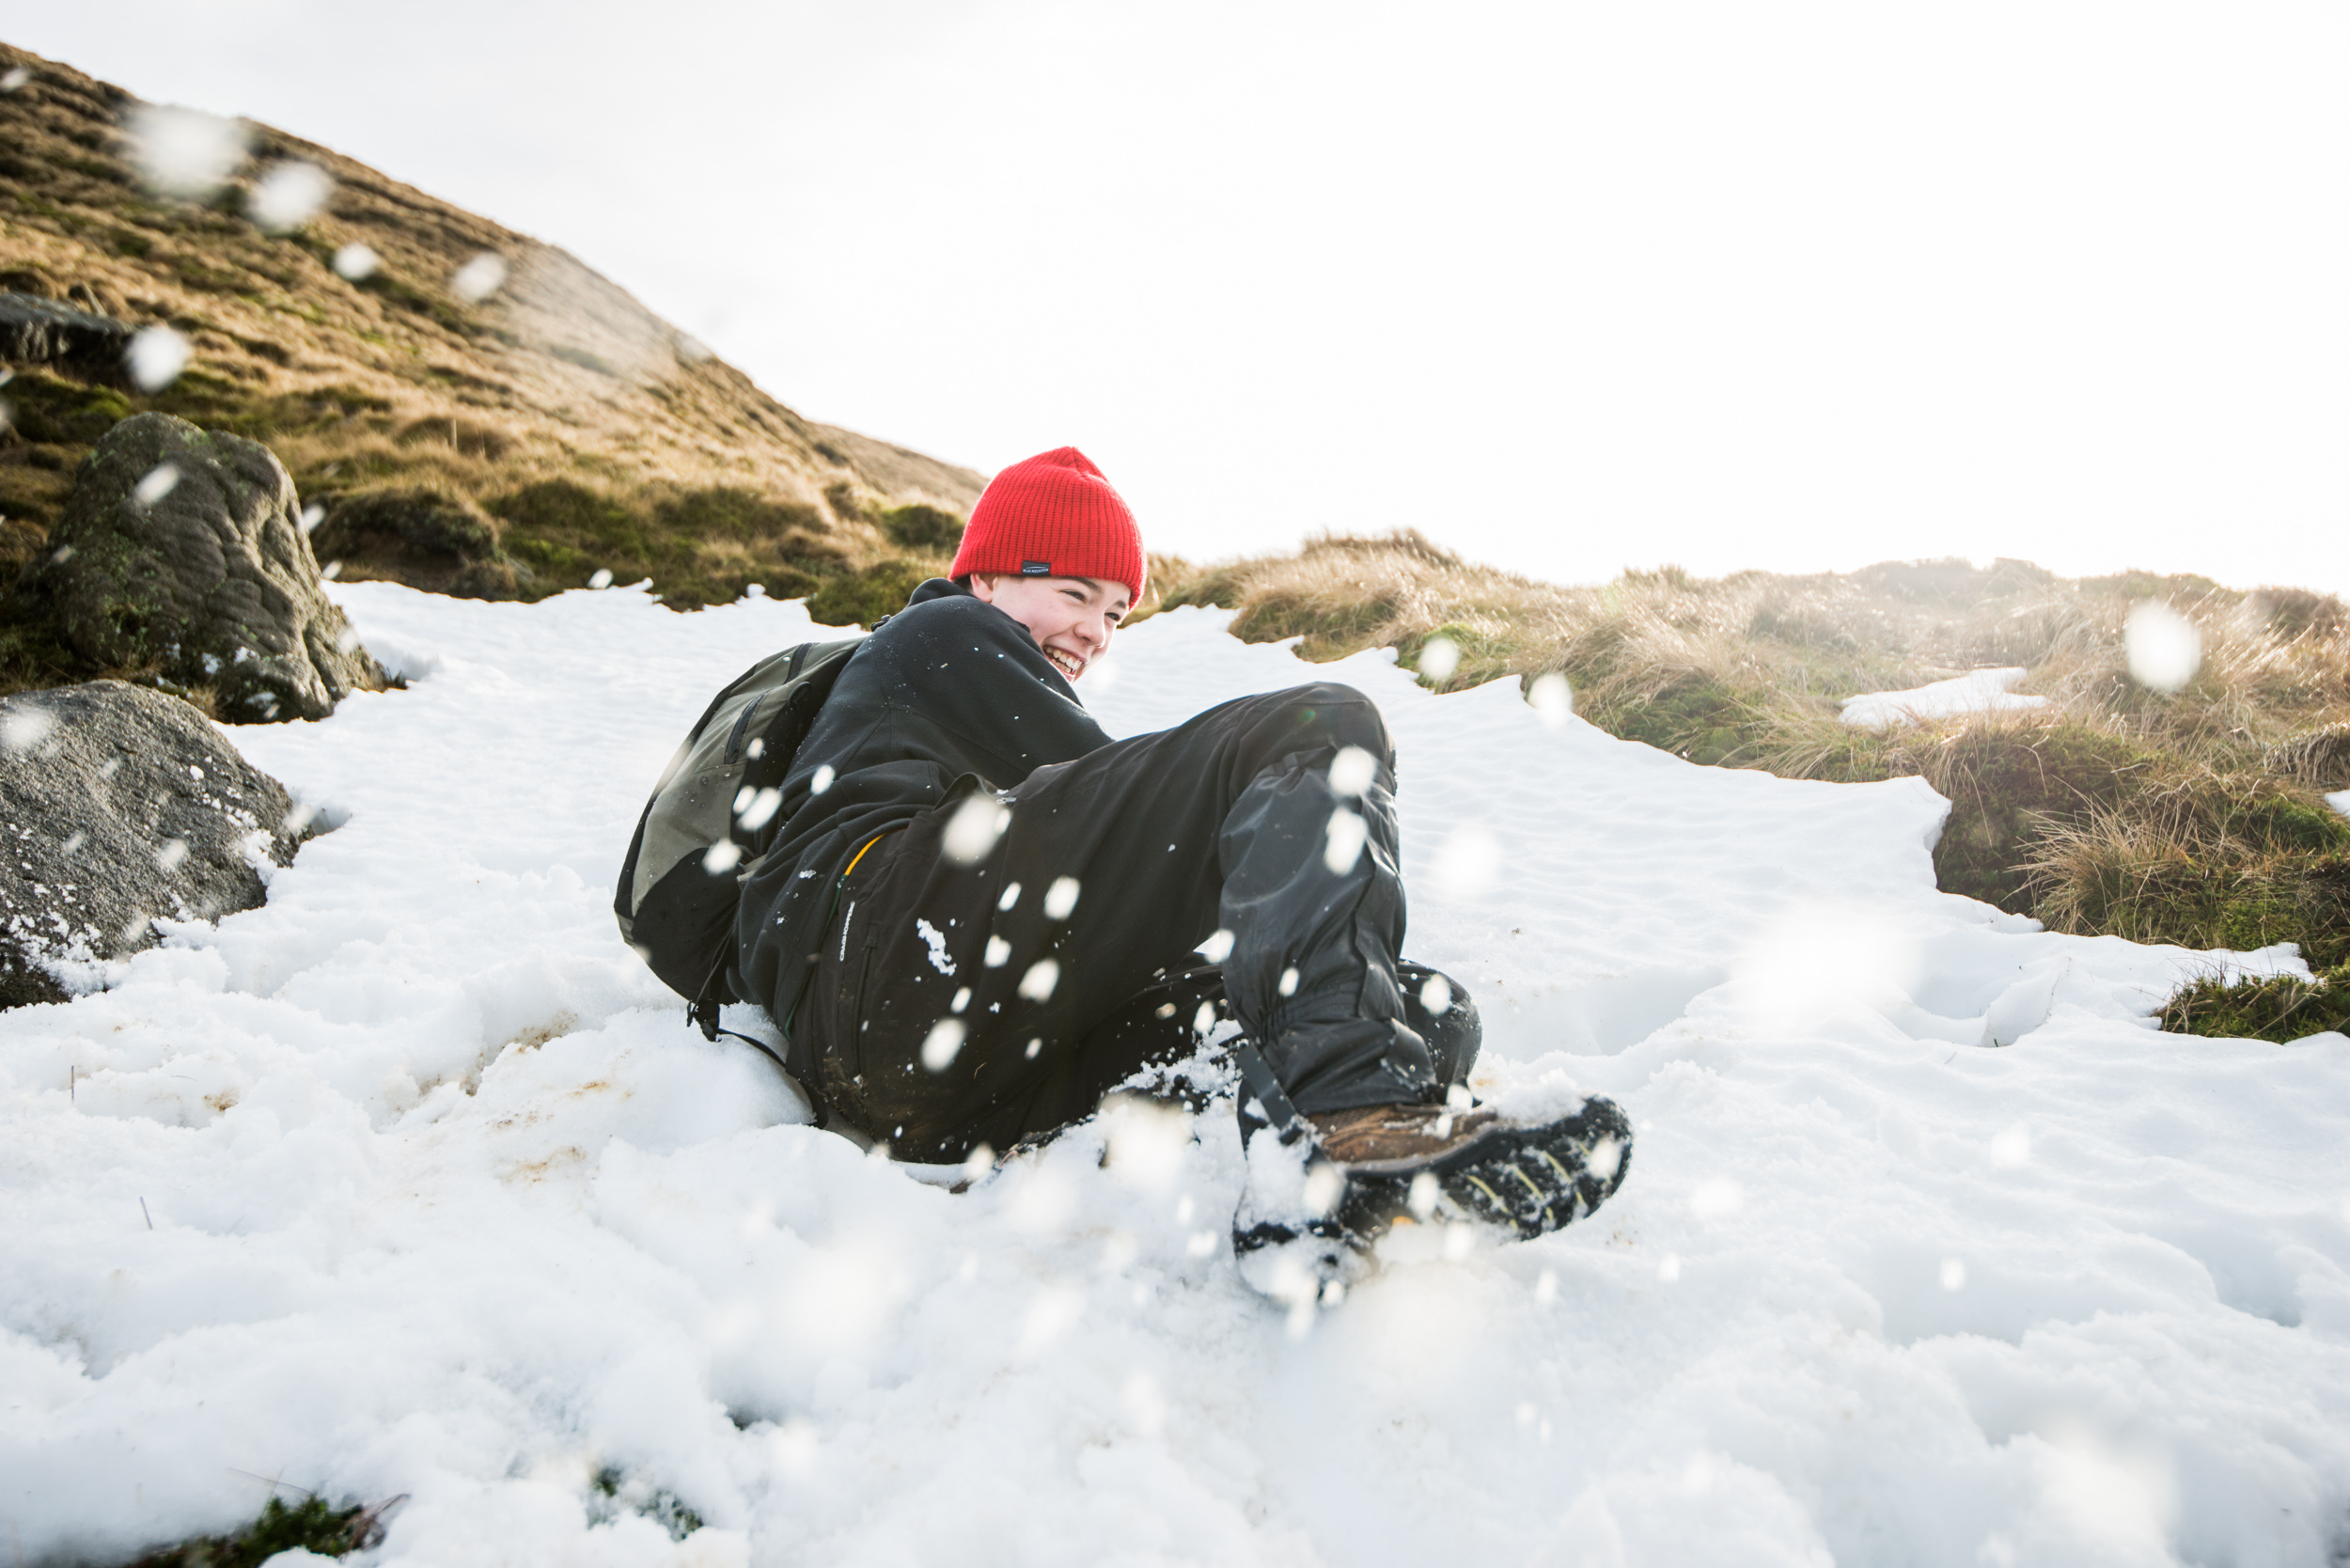 The Peak district gave us plenty of fun in the snow